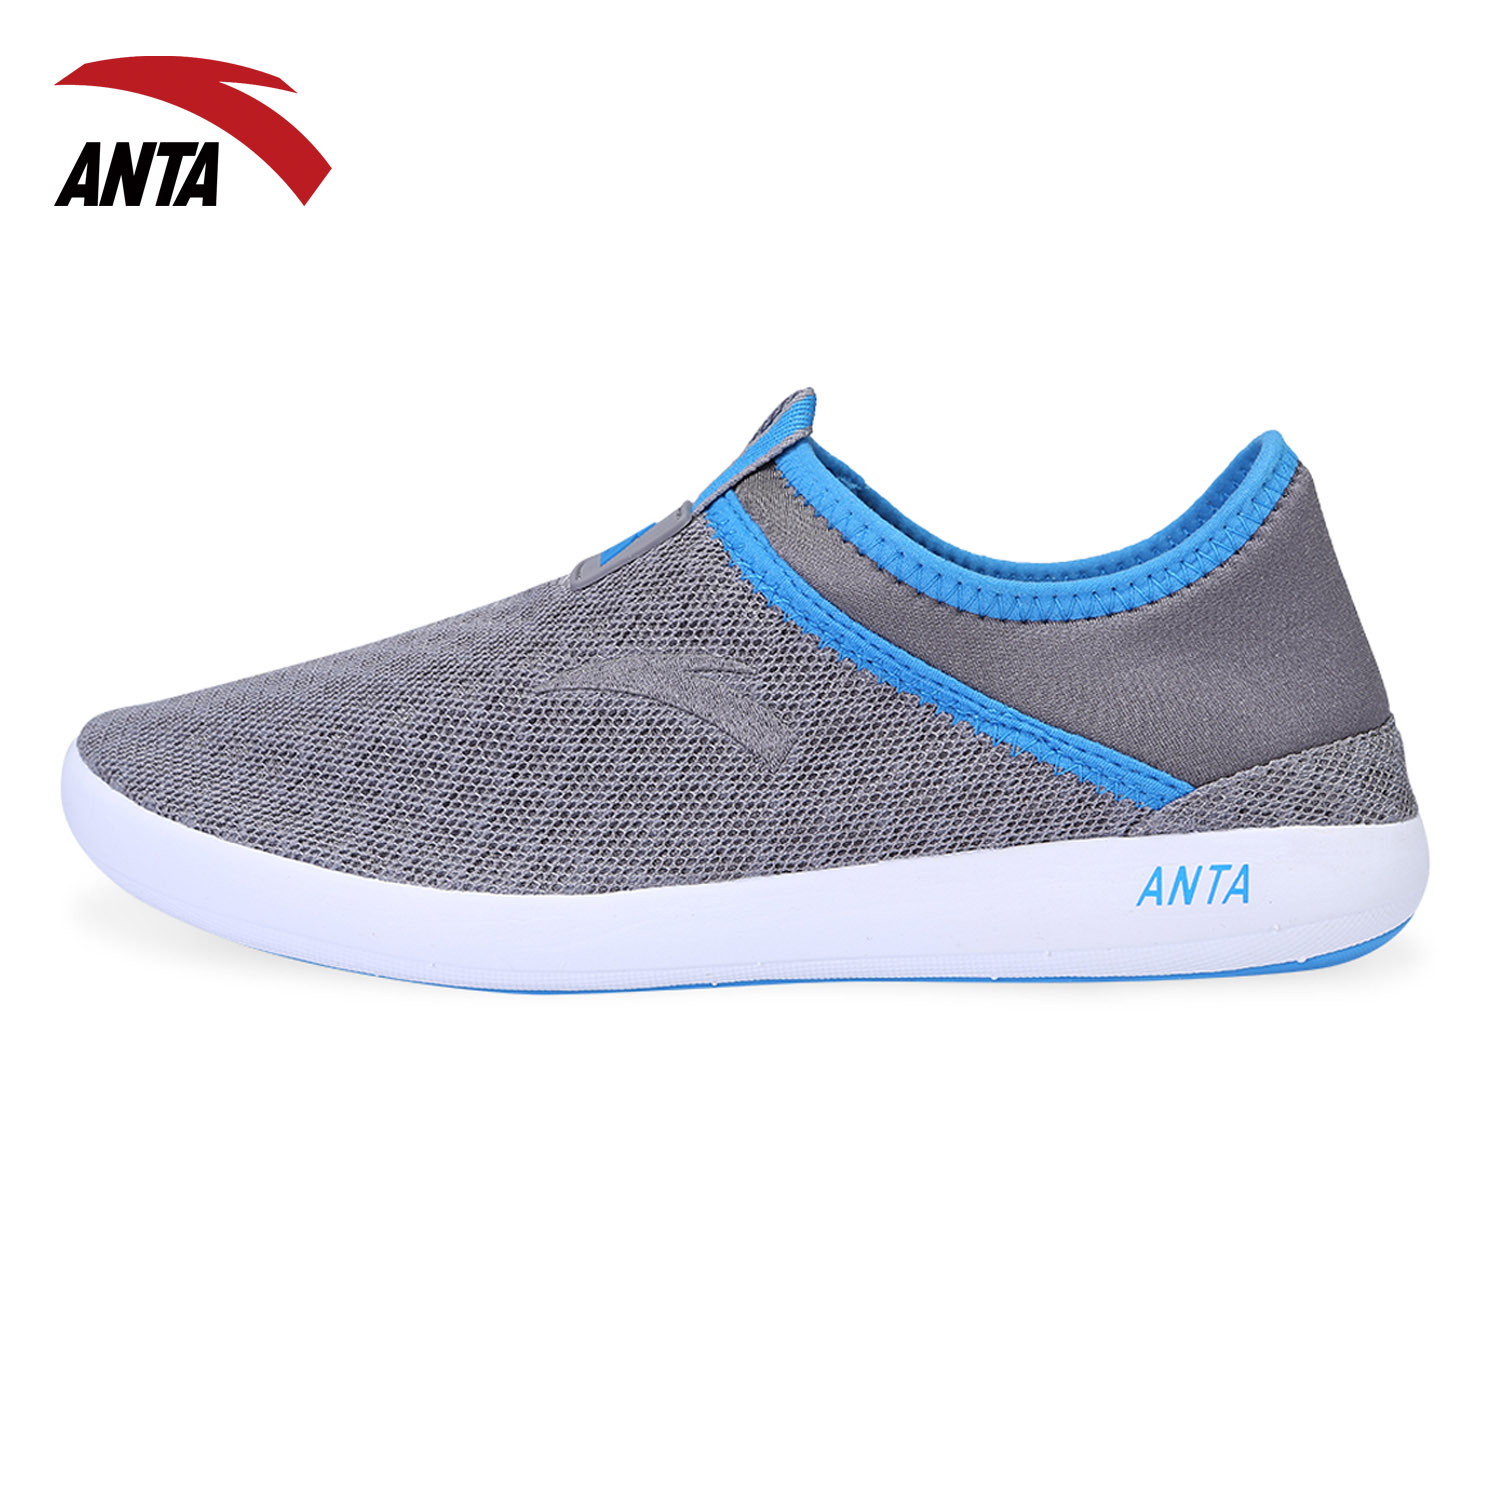 For post 2013 Amoi ANTA Anta sneaker men's shoes casual step on a genuine Ford outdoor shoes |91326610